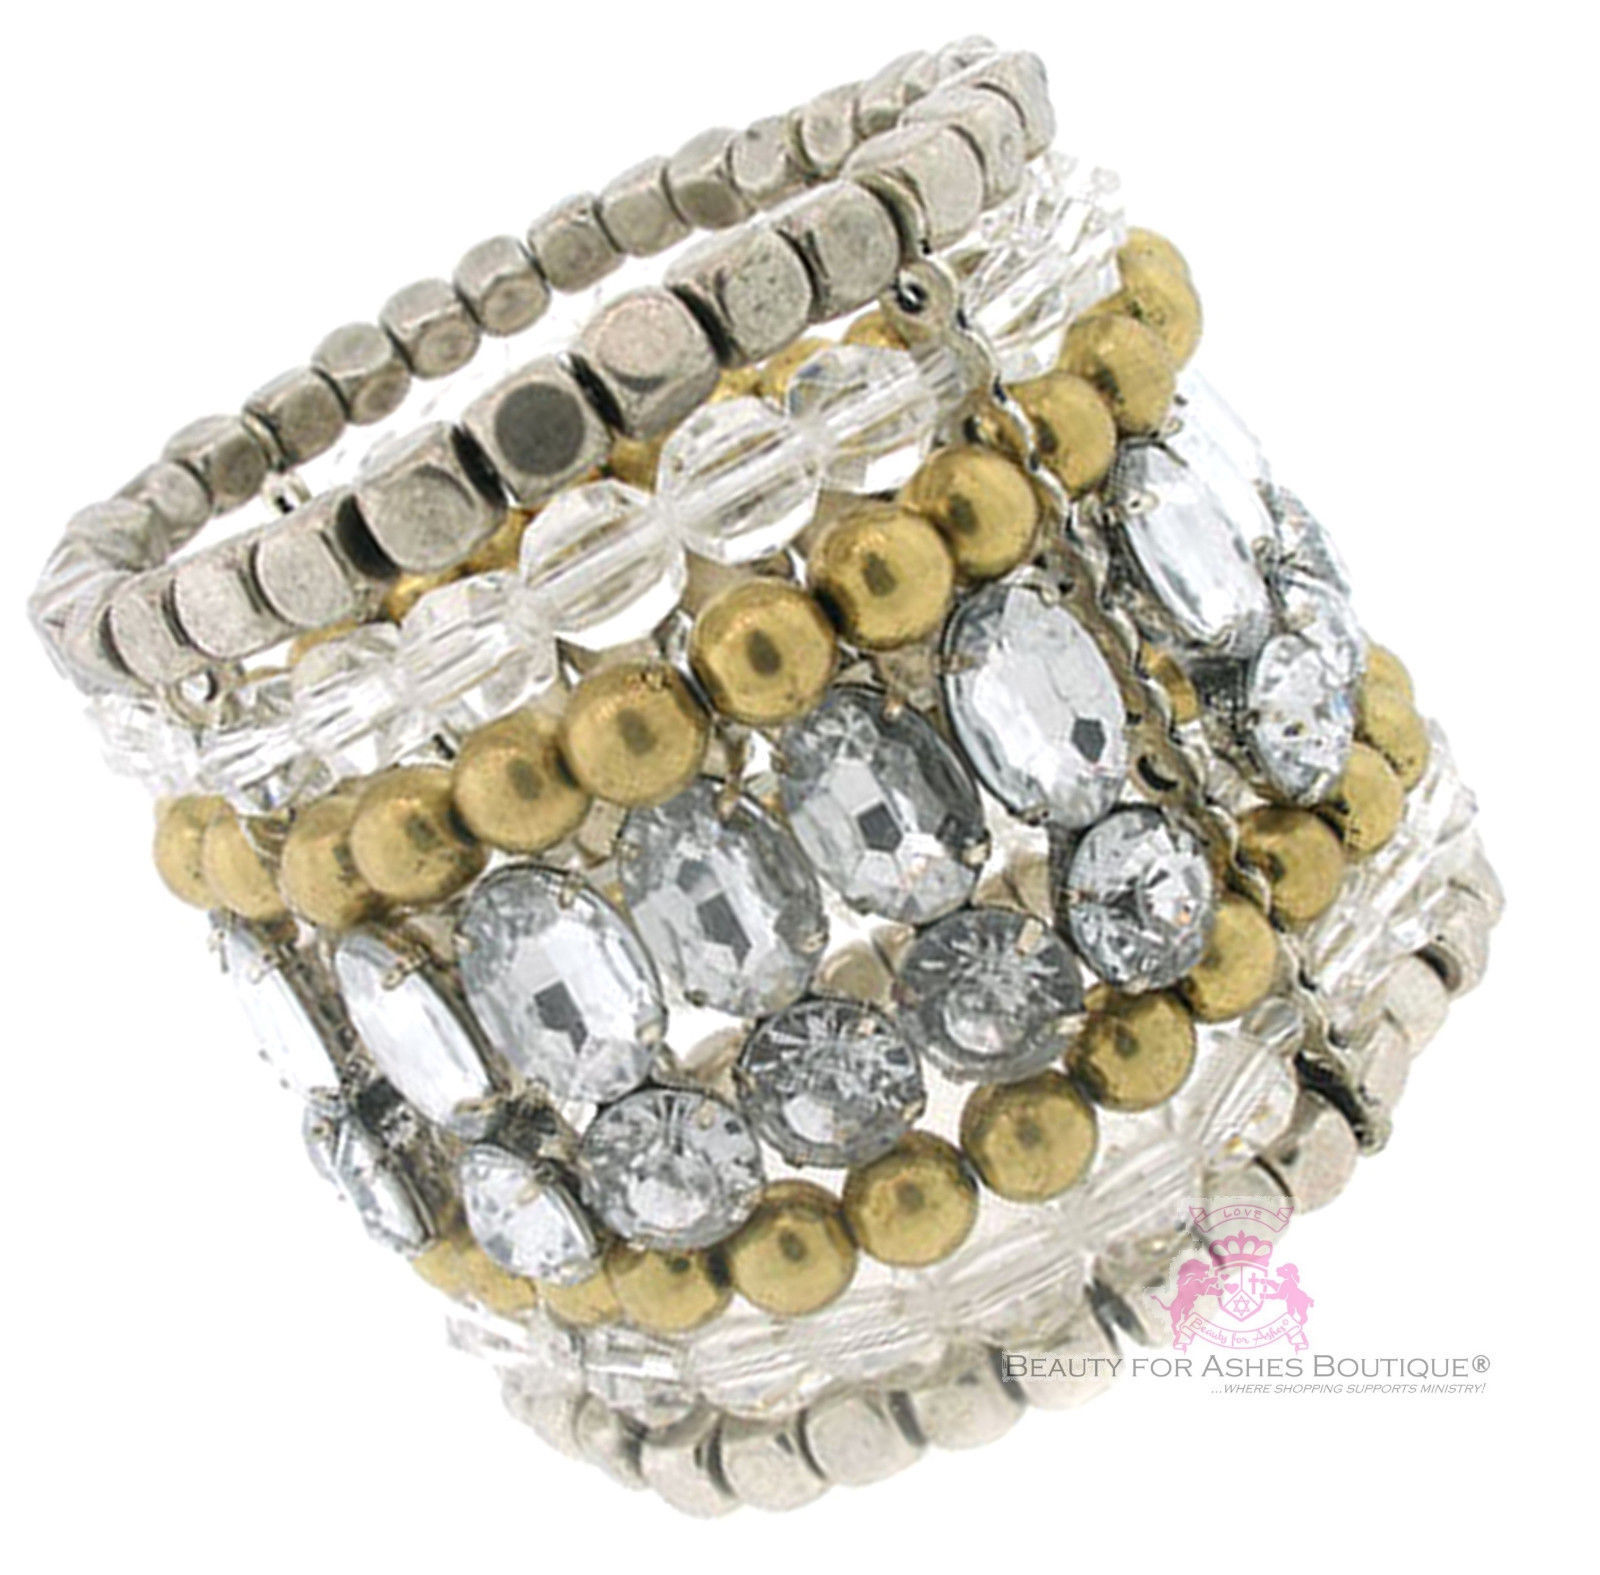 Beauty for Ashes Clear Acrylic Super Chunky Silver Stretch Bracelet